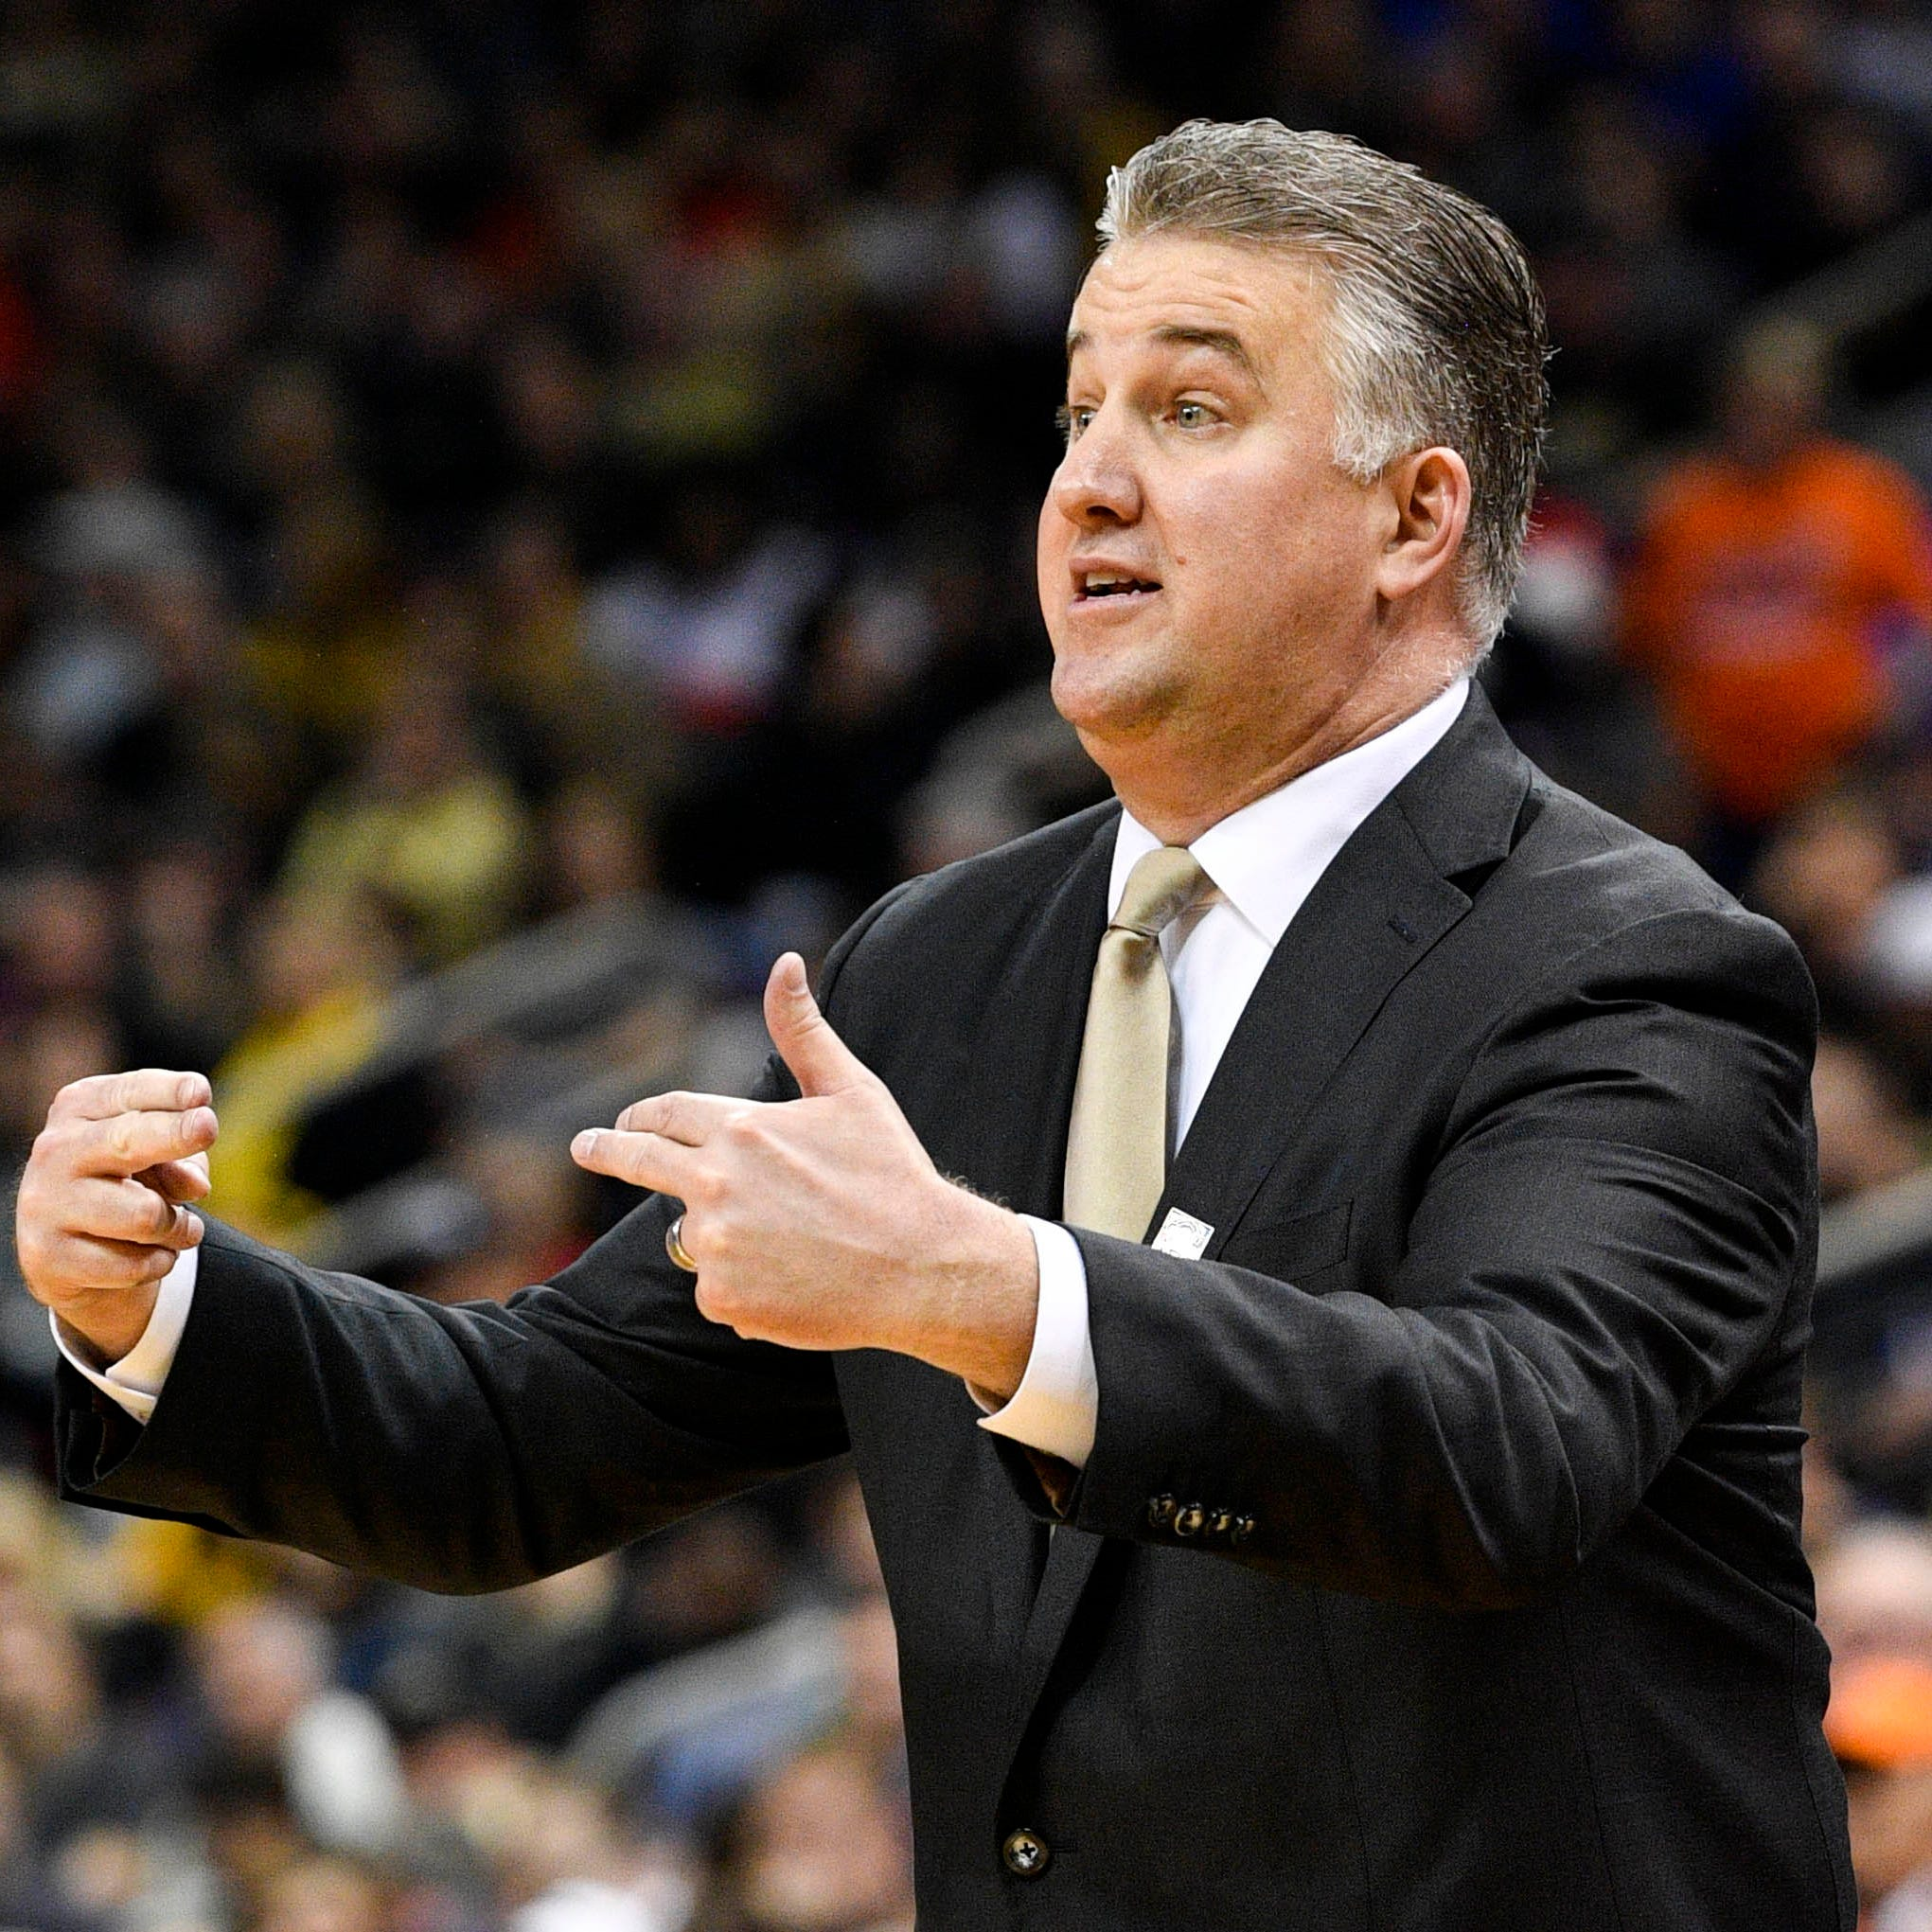 Purdue basketball coach Matt Painter can't watch the Virginia shot alone